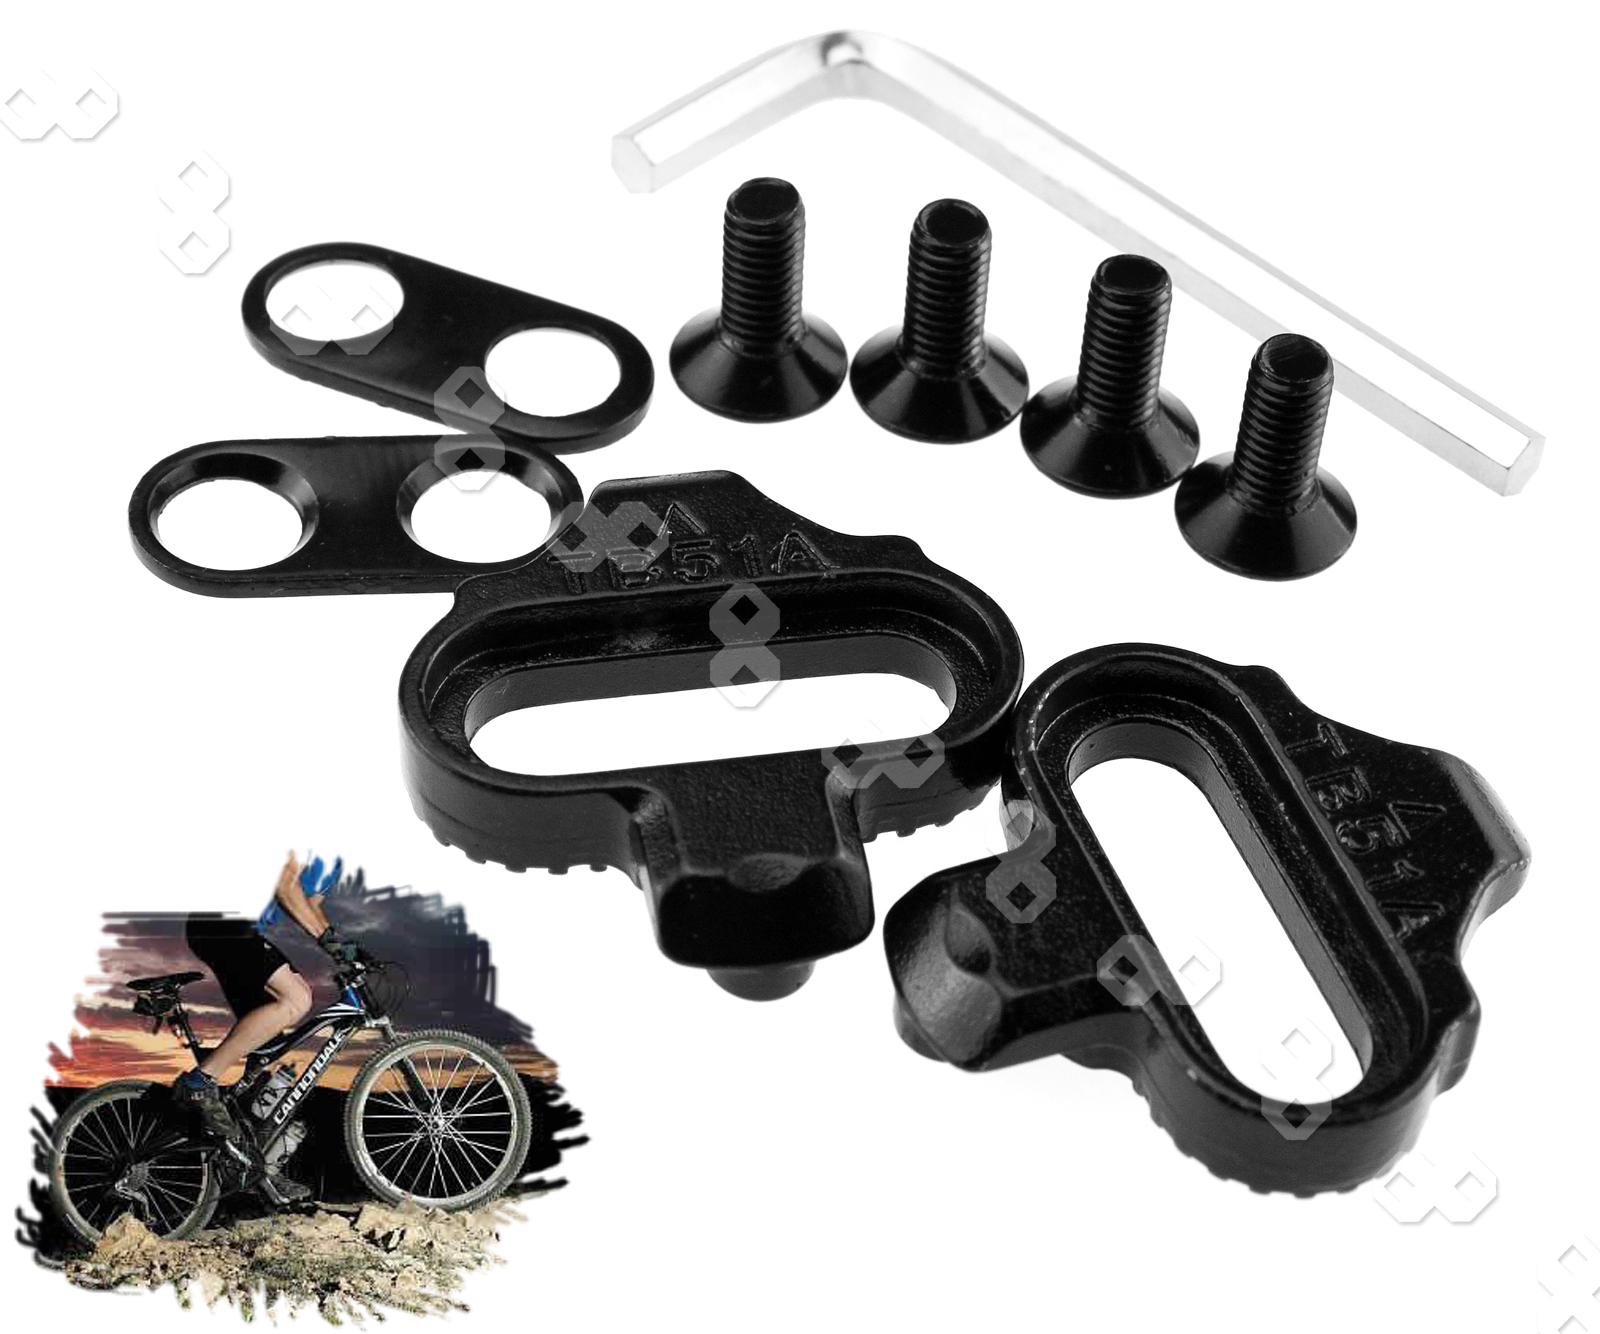 c2ed08b21 Details about WE For Shimano SM-SH51 SPD Single Release Mountain Bike MTB  Pedal Cleats Set